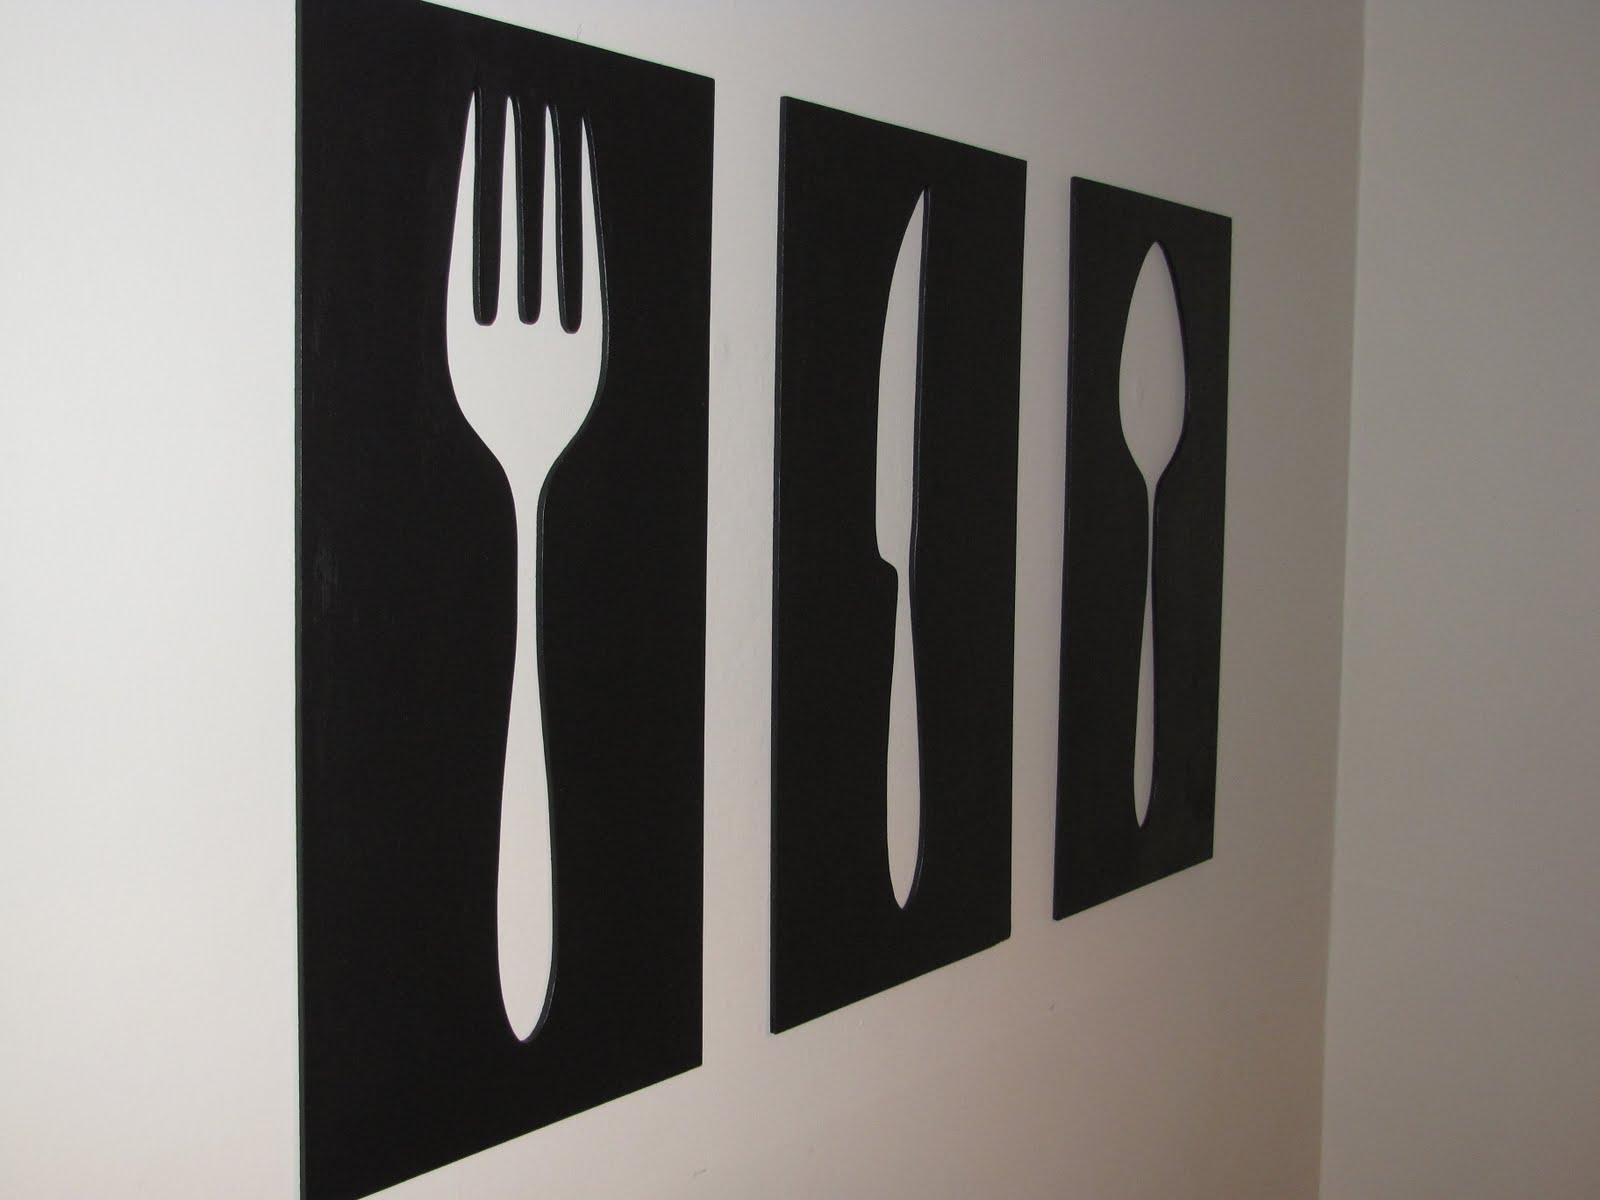 Dining Fork And Spoon Wall Decor : Good Fork And Spoon Wall Decor Within Giant Fork And Spoon Wall Art (View 14 of 20)